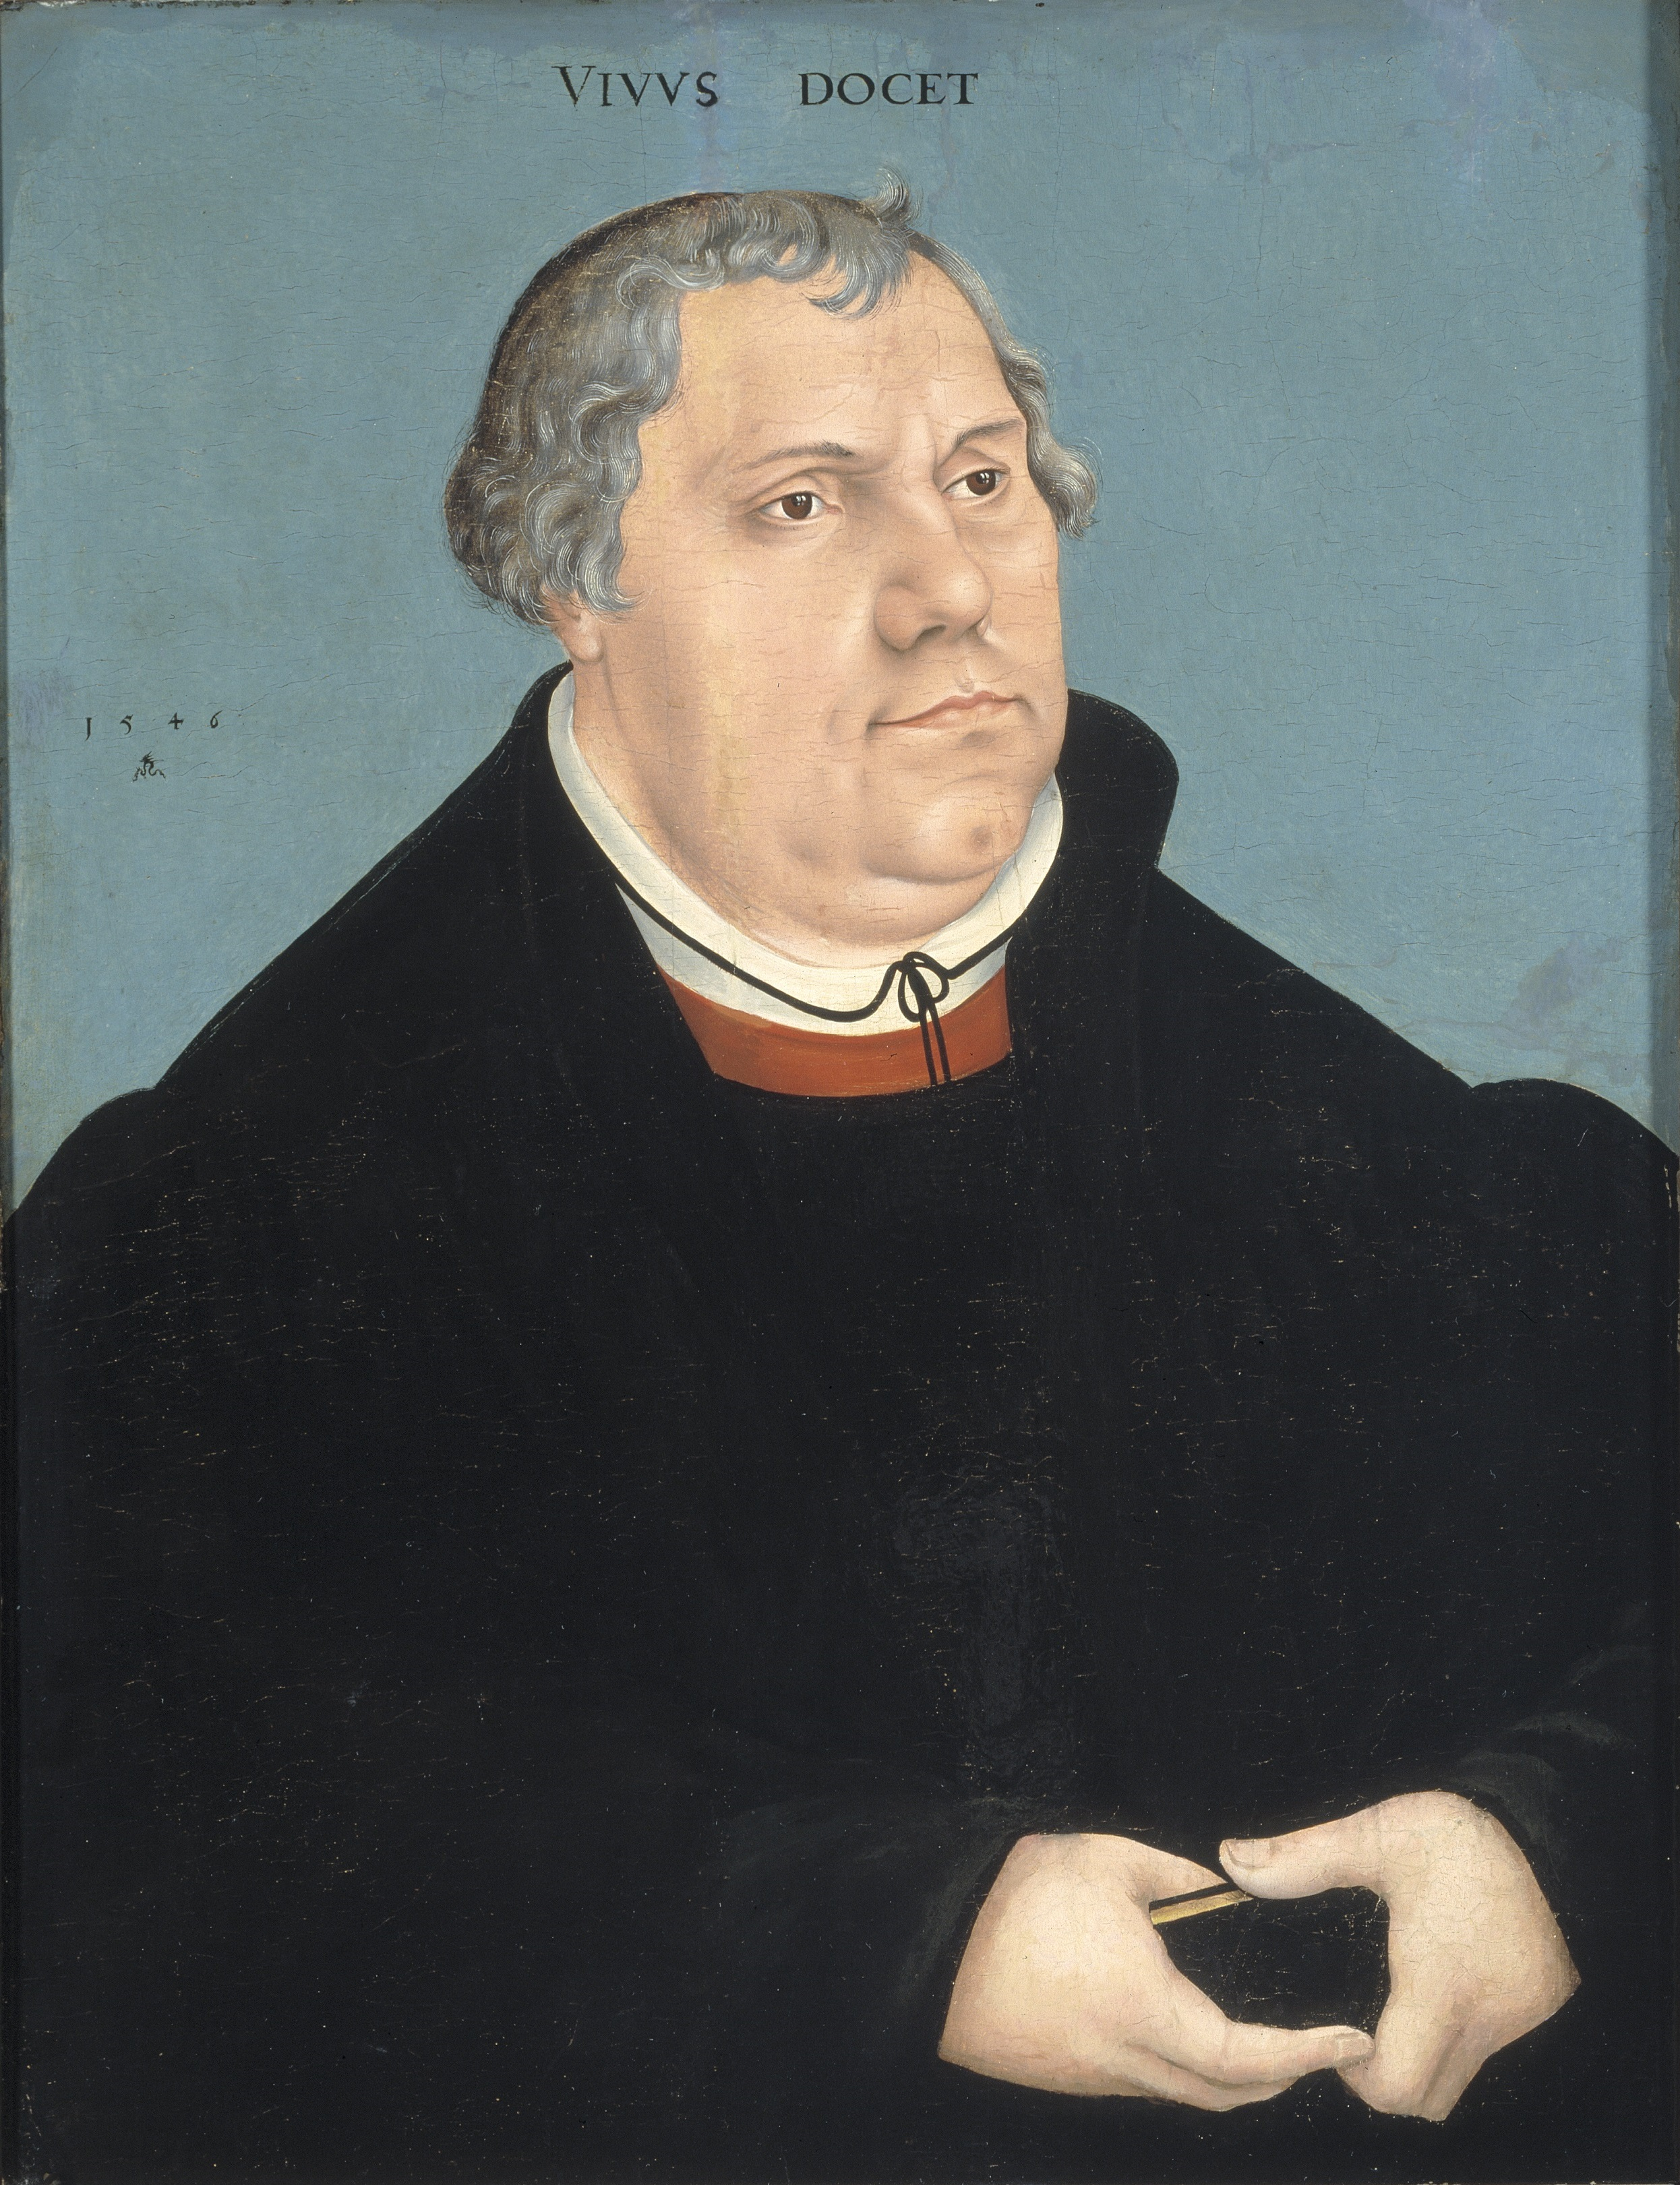 https://upload.wikimedia.org/wikipedia/commons/4/4c/Lucas_Cranach_d.%C3%84._-_Bildnis_des_Martin_Luther_%281546%2C_Catharijneconvent%29.jpg